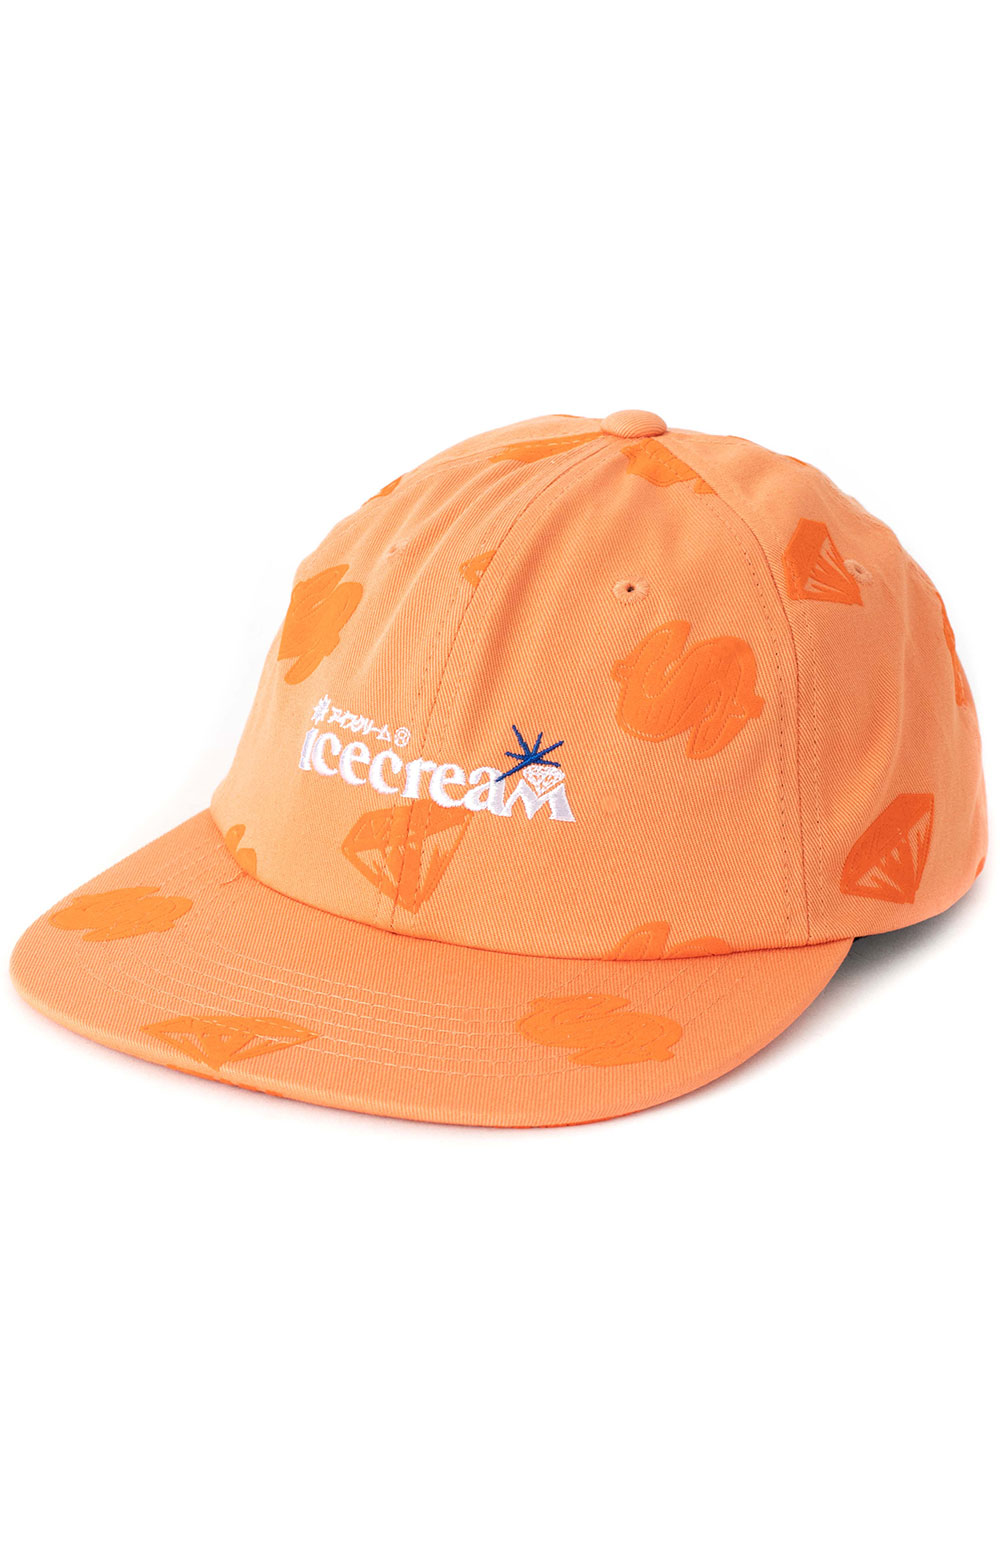 Syrup Dad Hat - Cooper Tan